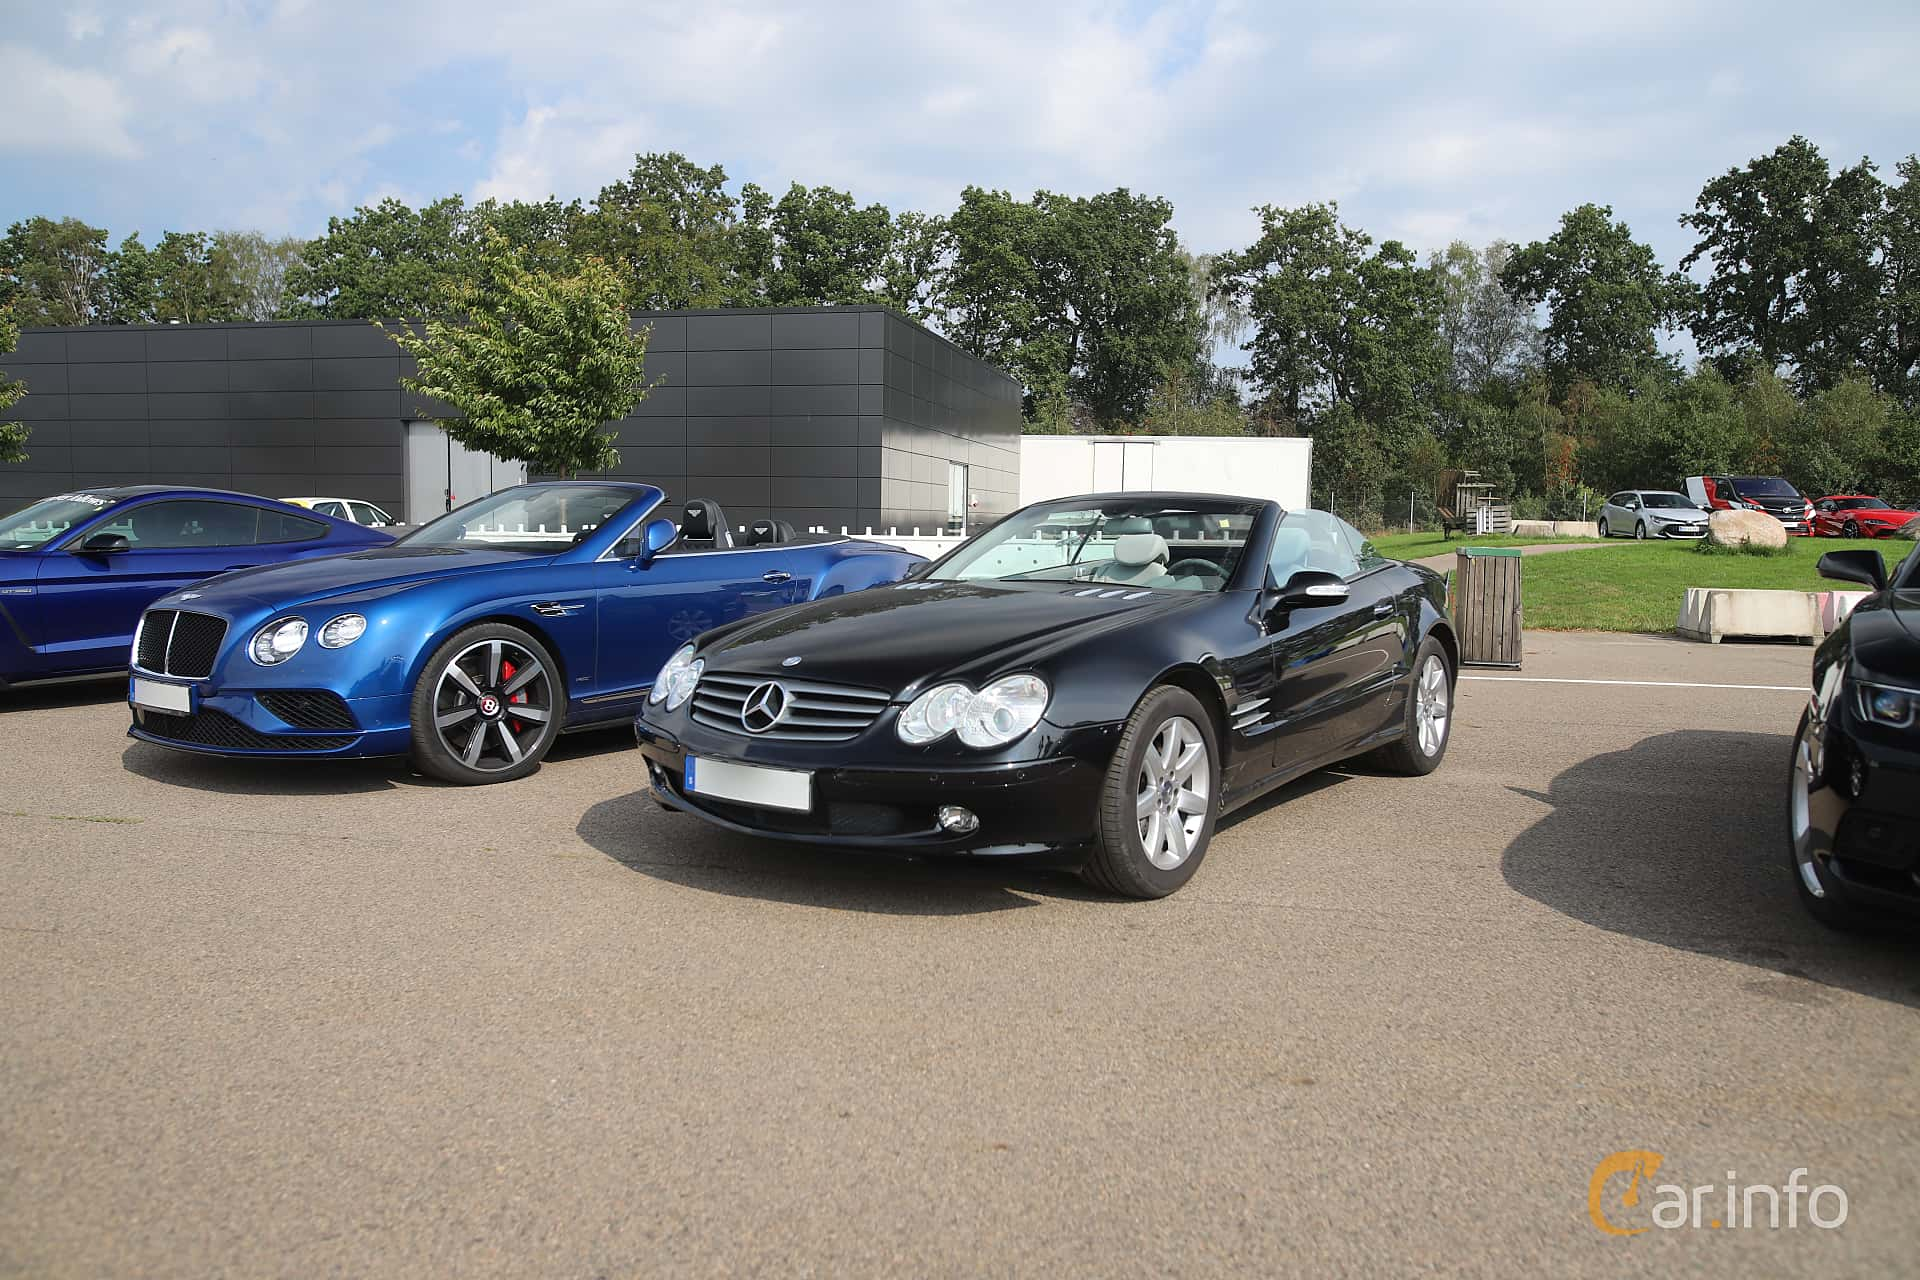 Front/Side  of Mercedes-Benz SL 350  5G-Tronic, 245ps, 2004 at Autoropa Racing day Knutstorp 2019